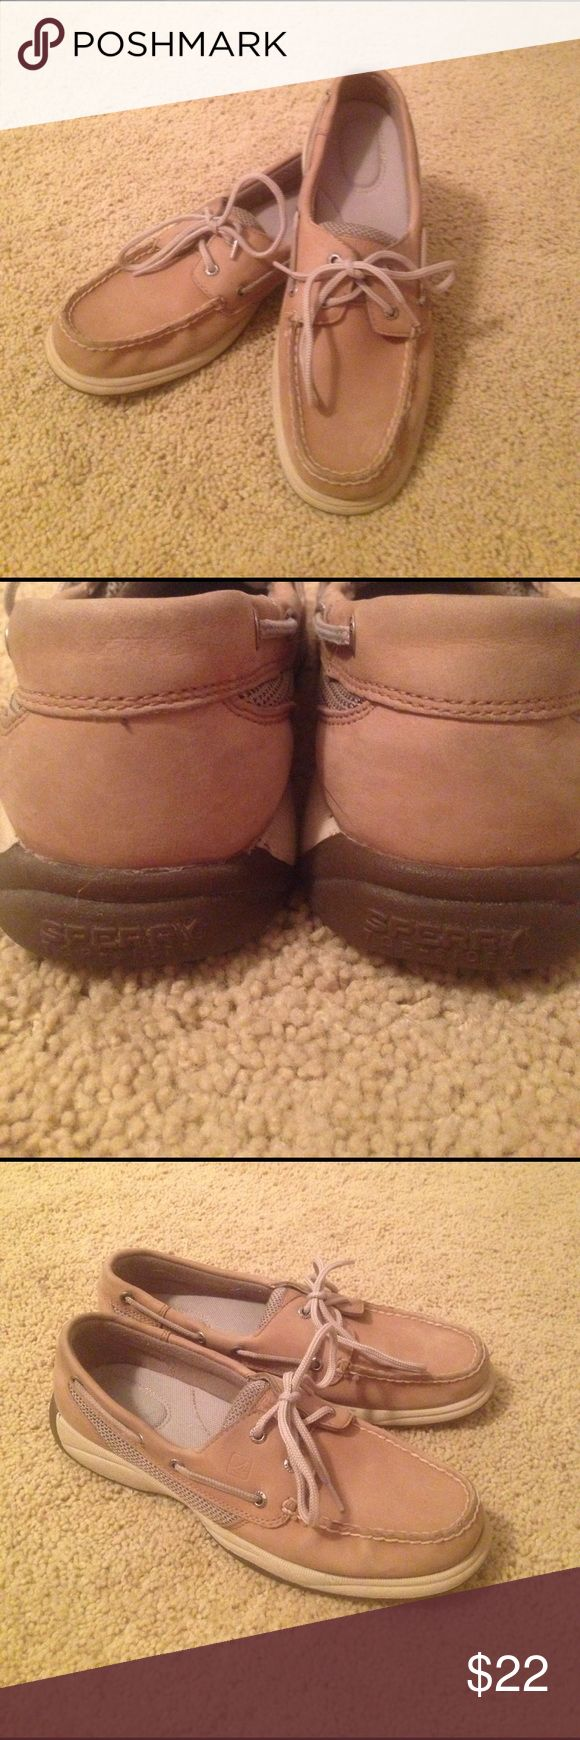 Sperry Top Sider shoes In great condition! Worn only two or three times. No scuff marks. Sperry Top-Sider Shoes Sneakers